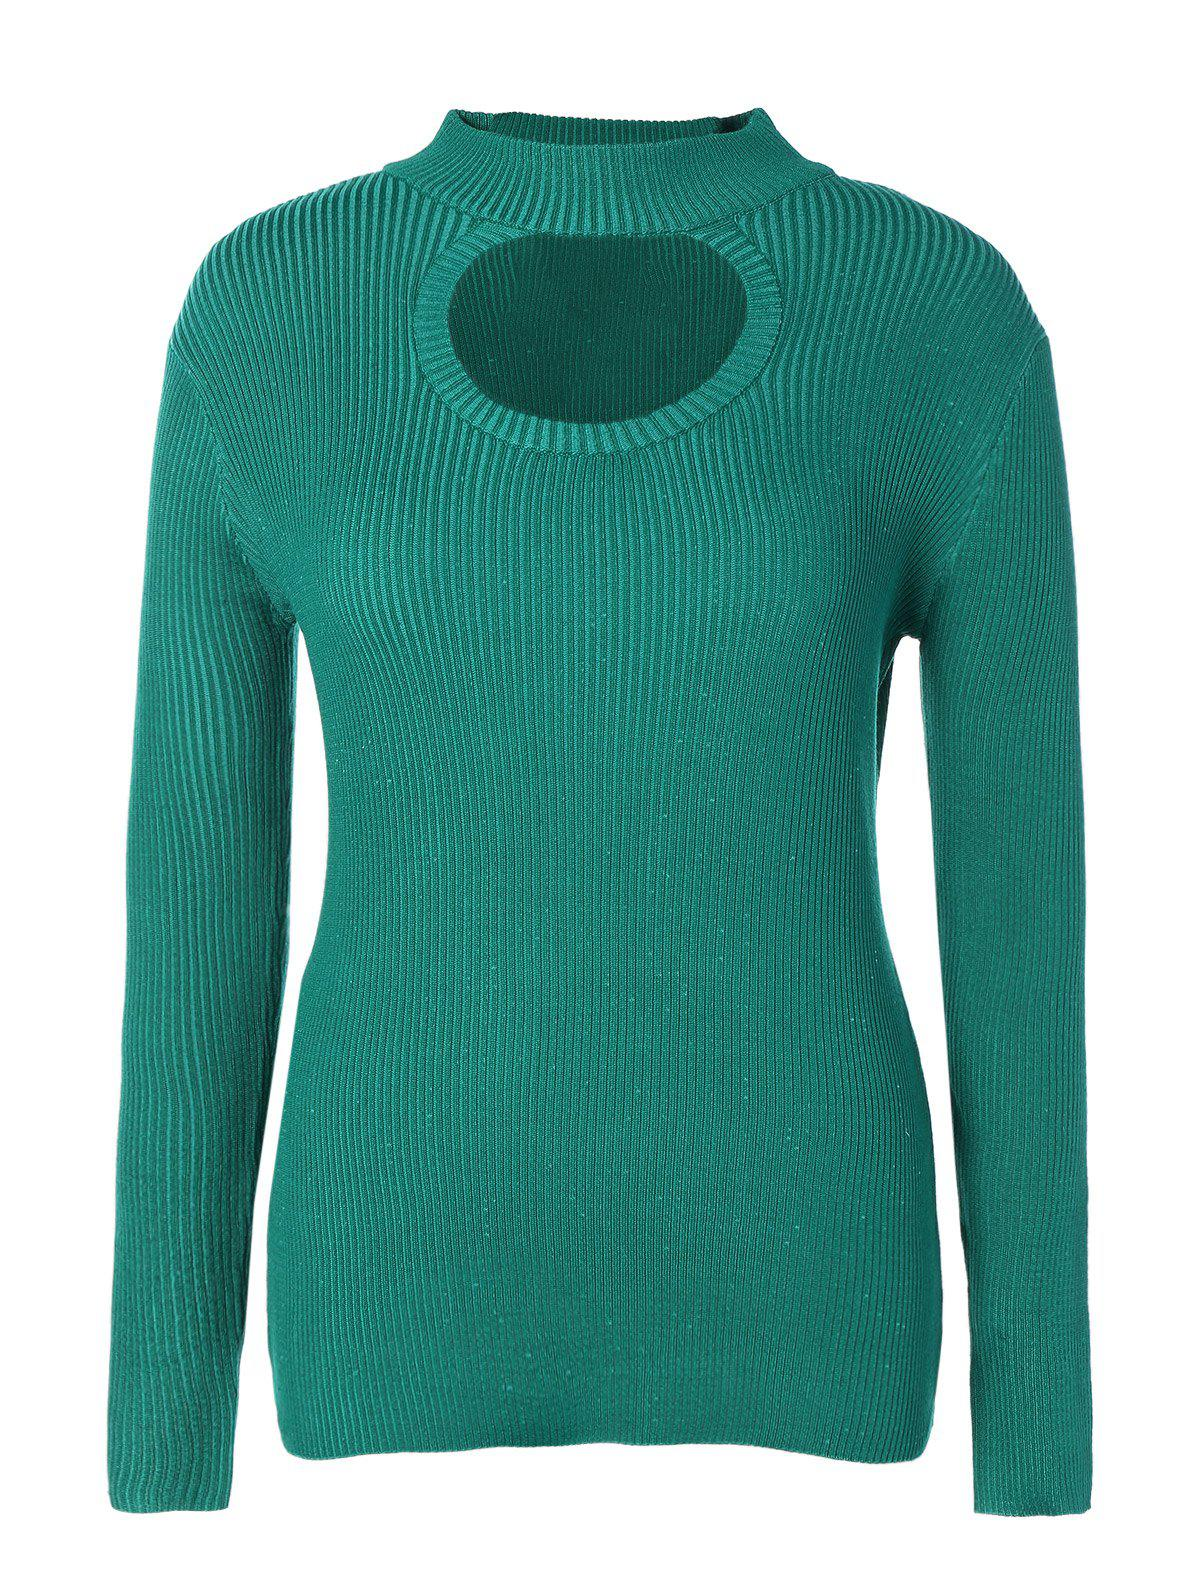 Cut Out Chest Plus Size Knitwear - GREEN 2XL